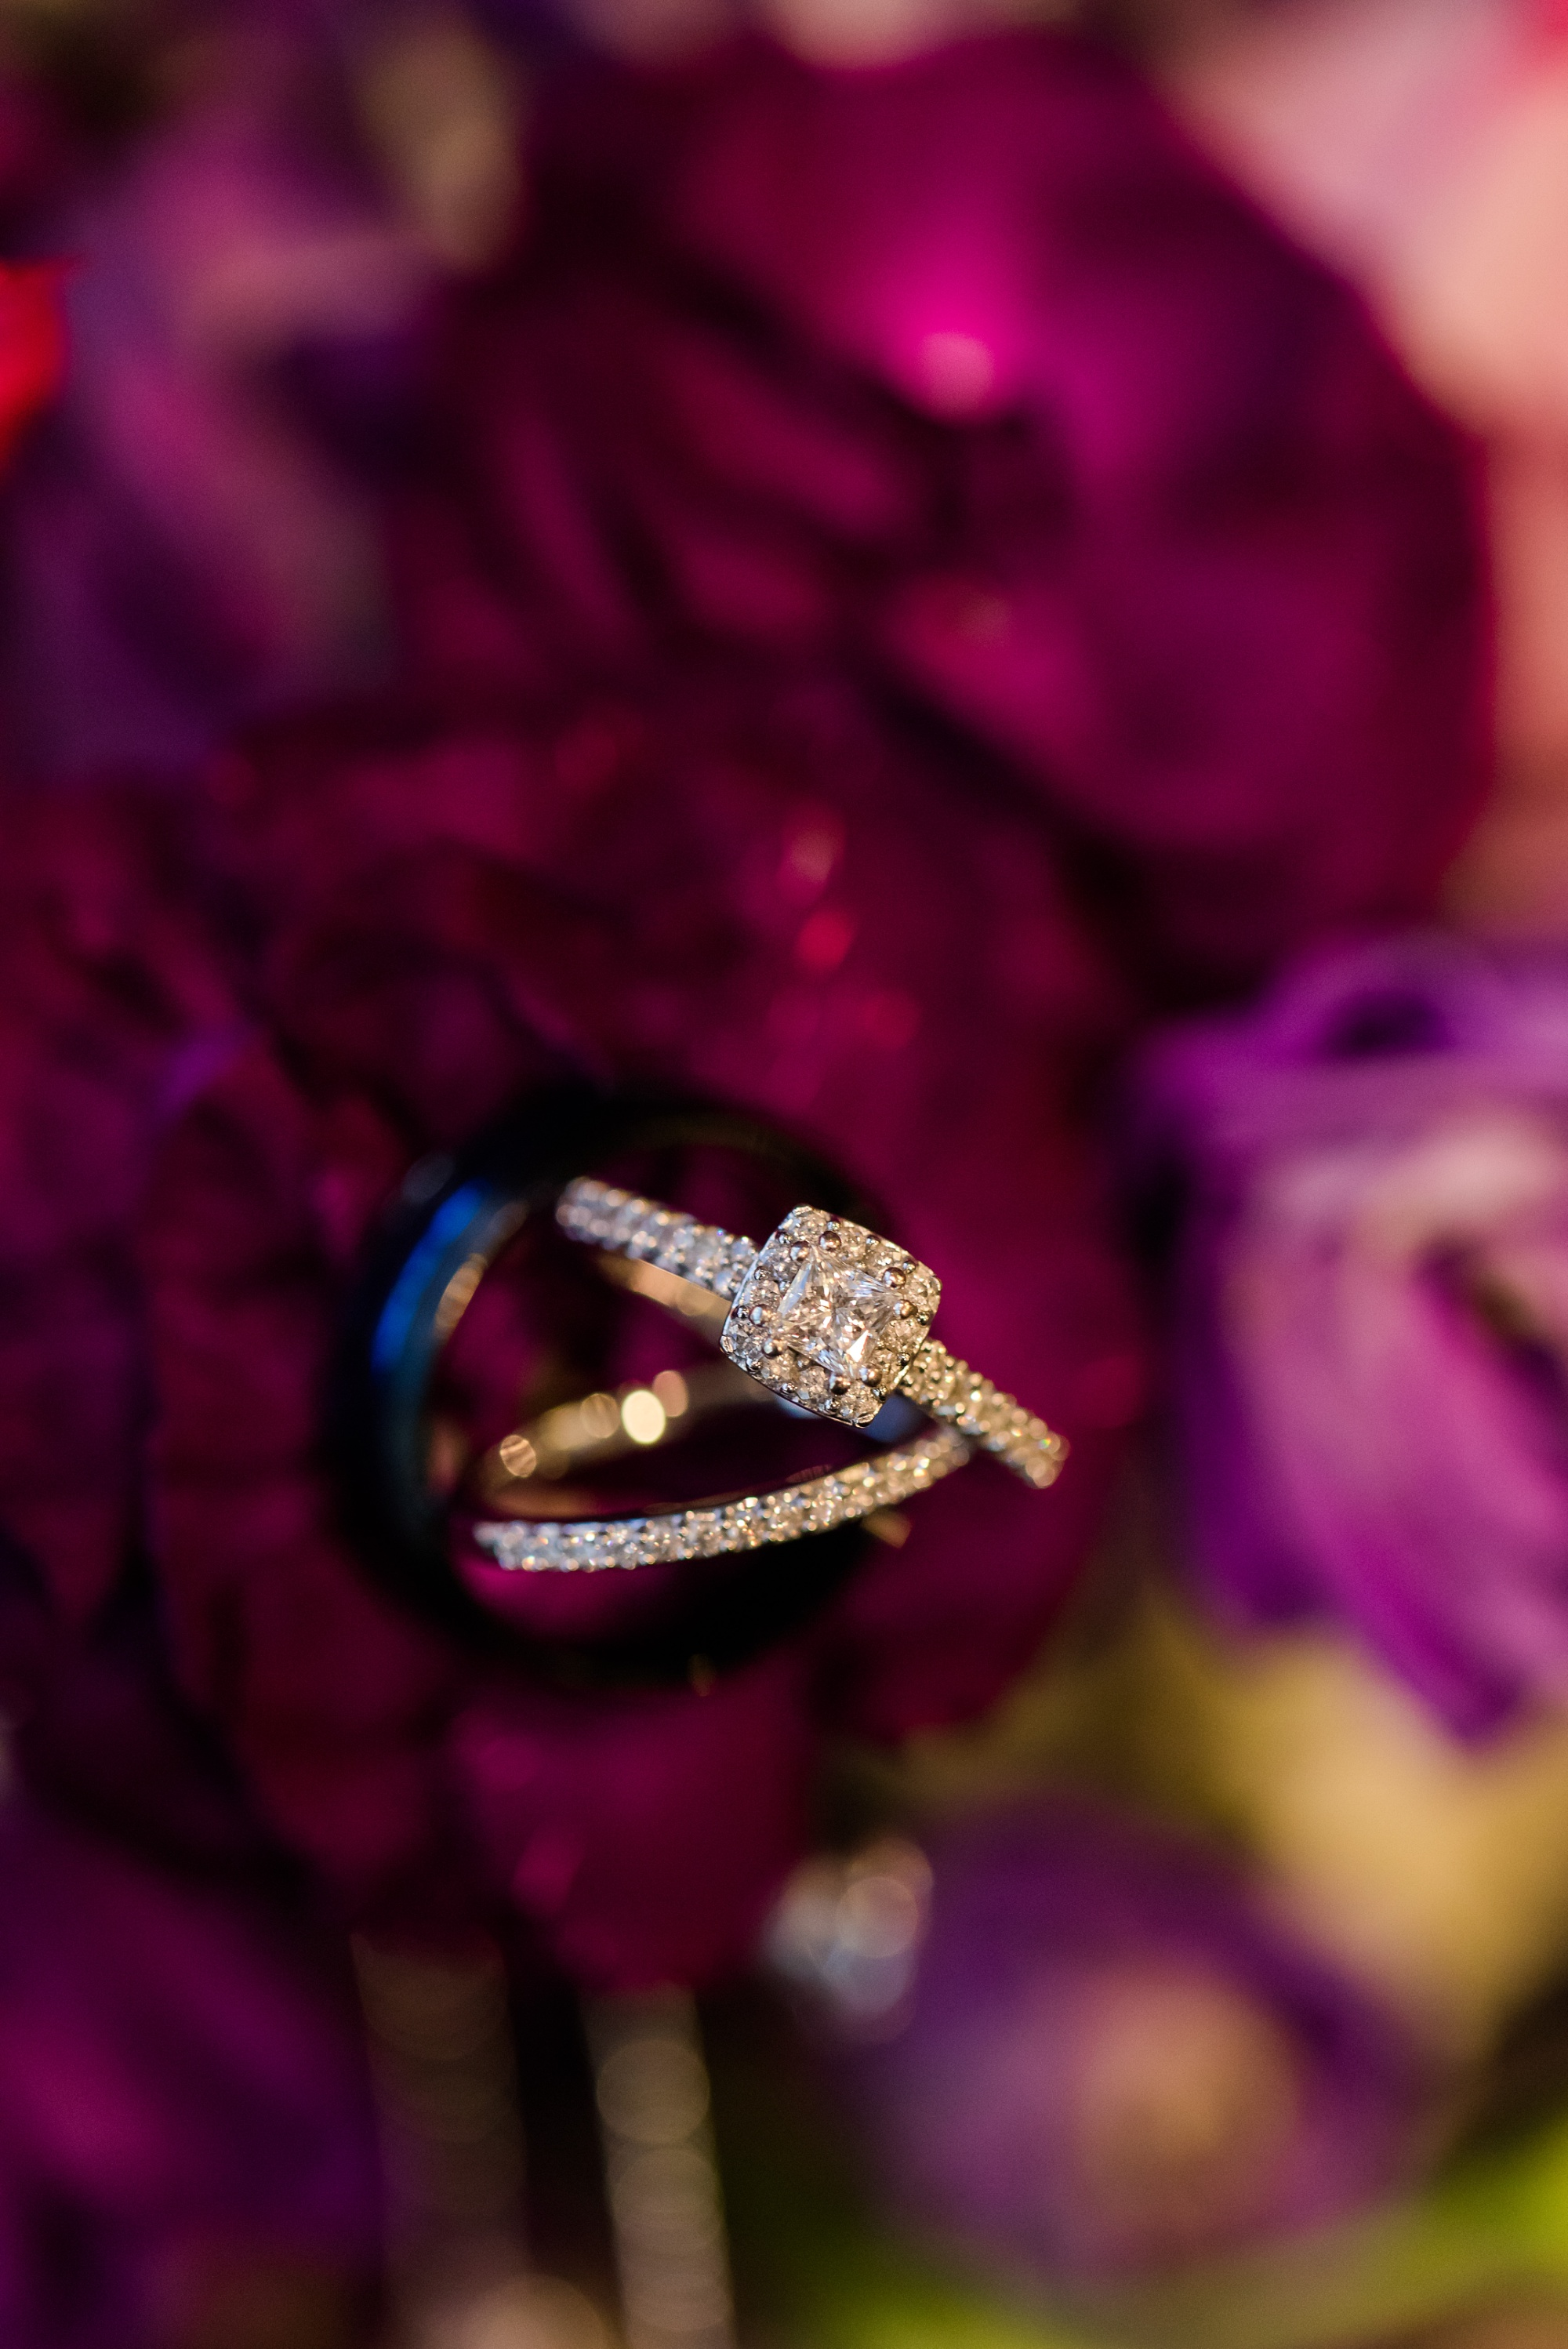 Downtown Fargo Disney Themed Wedding by Amber Langerud Photography | wedding rings